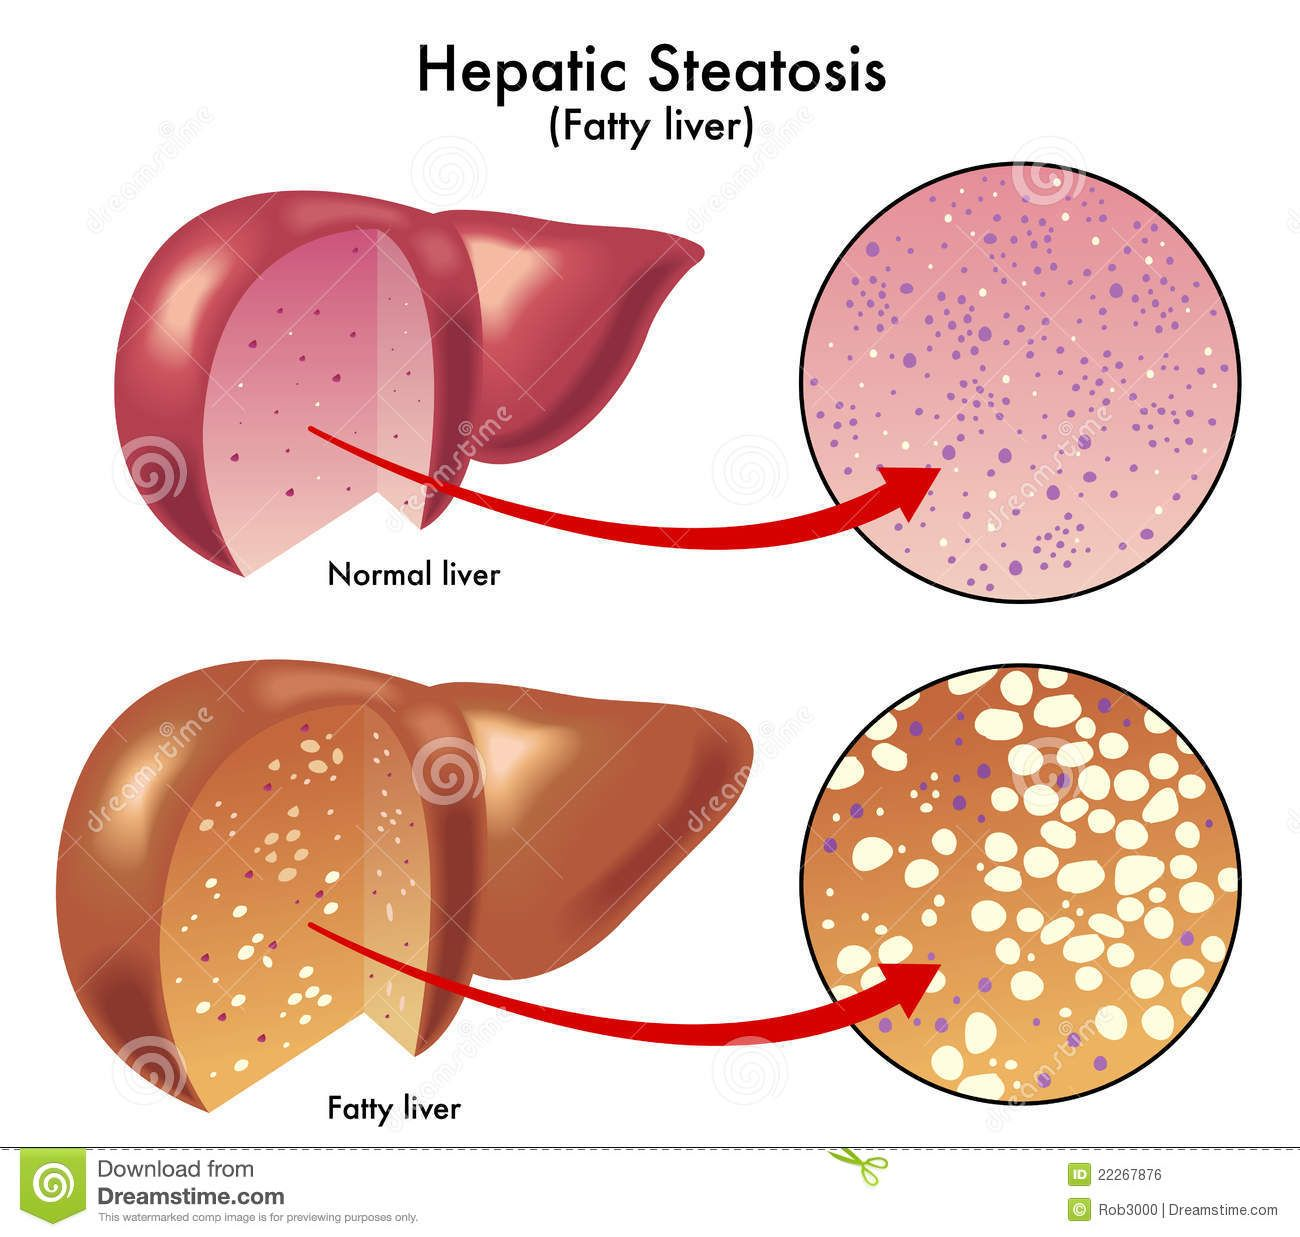 fatty liver disease Overview non-alcoholic fatty liver disease (nafld) is a very common disorder and refers to a group of conditions where there is accumulation of excess fat in the.